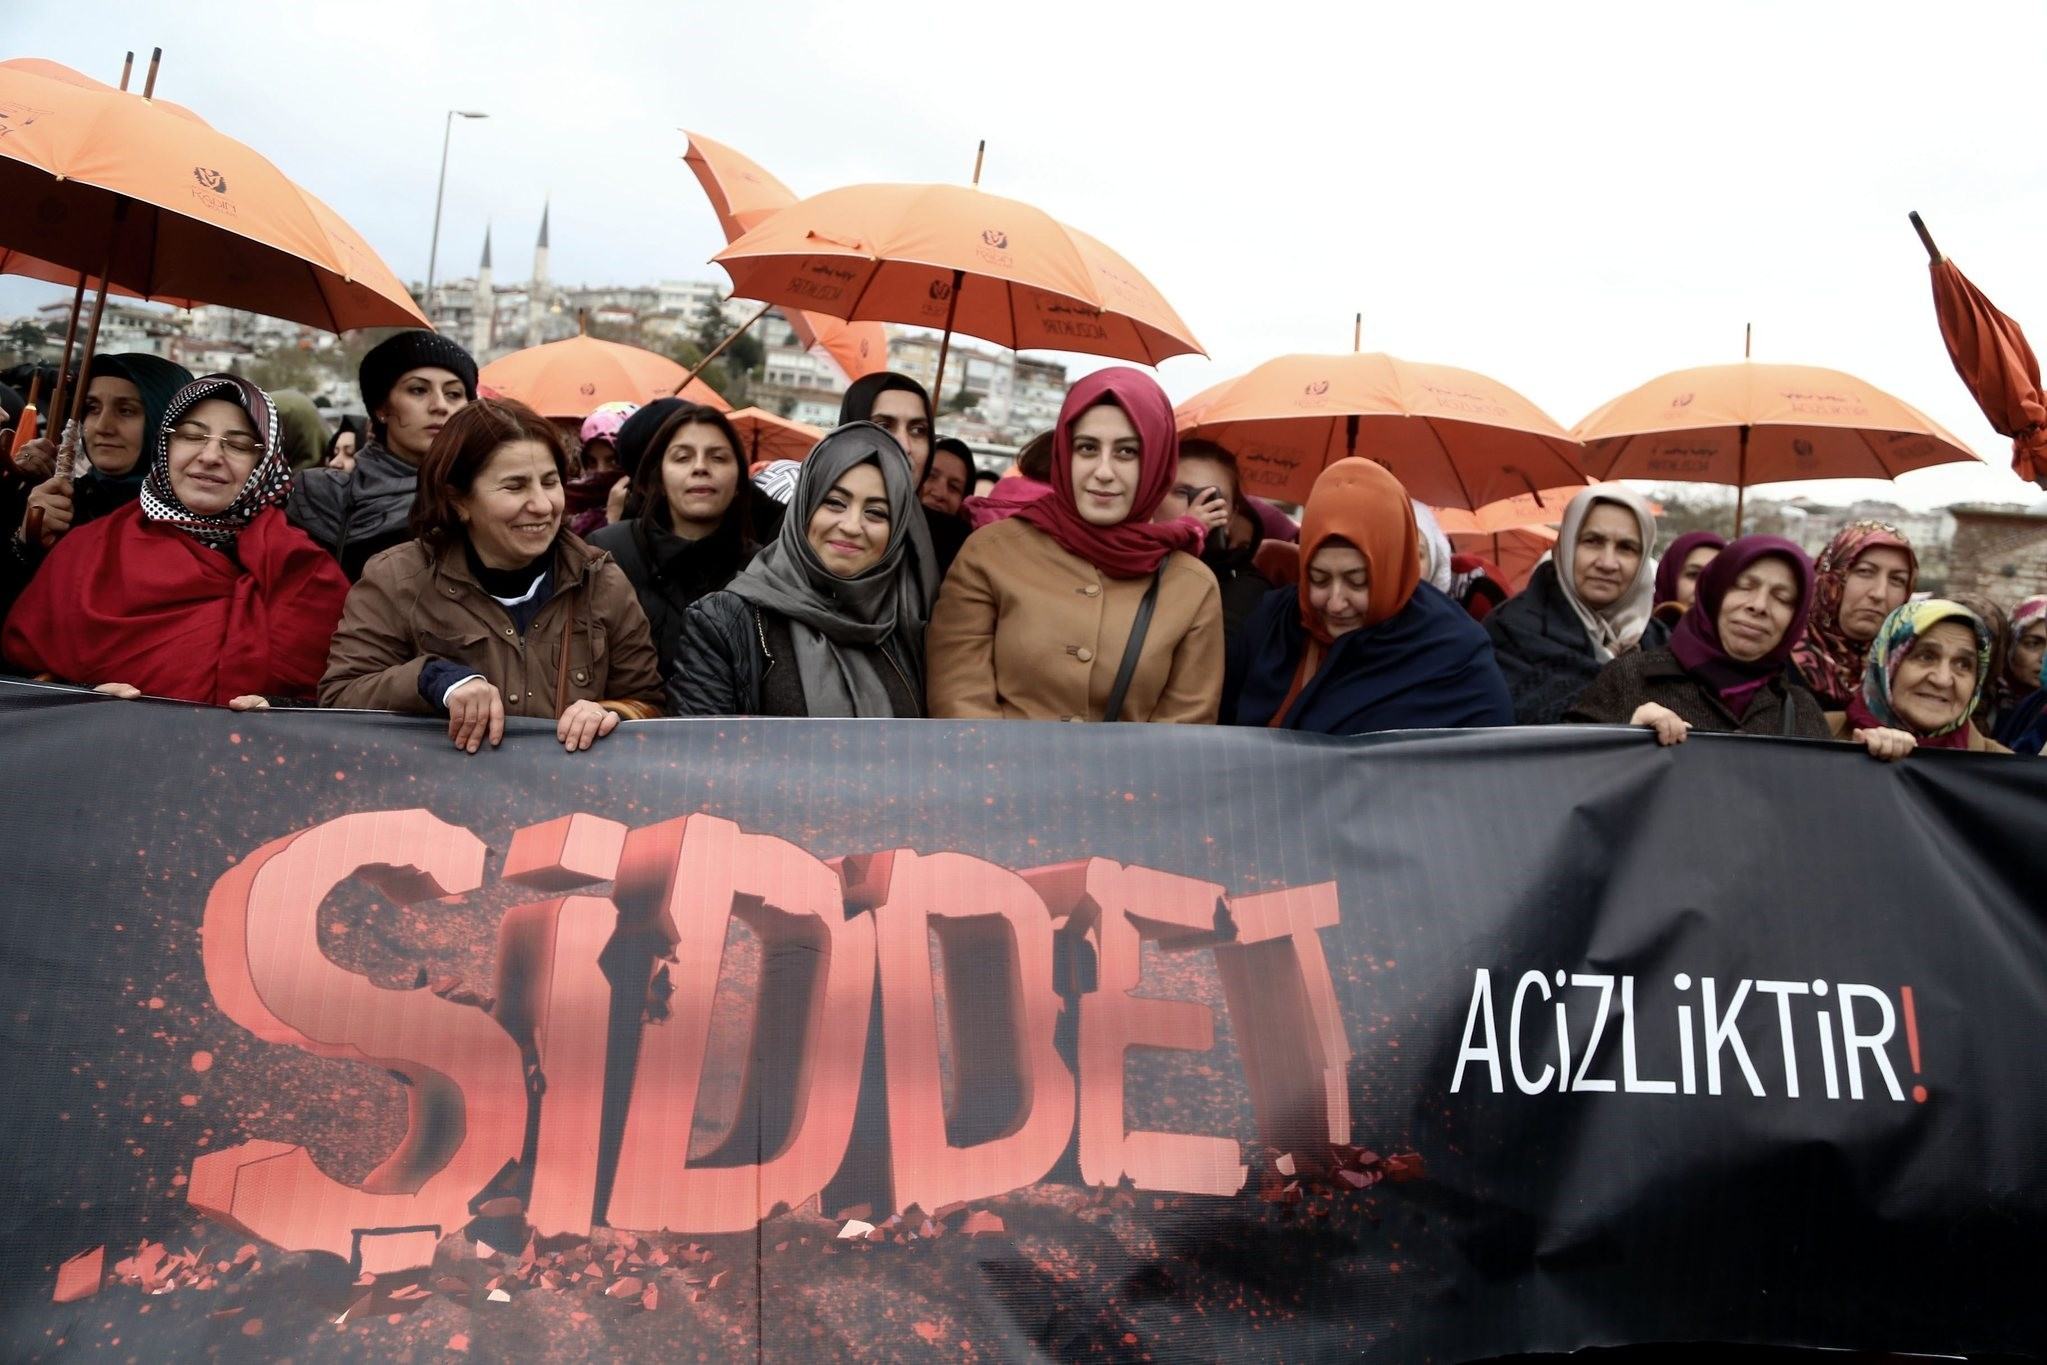 Female members of the AK Party hold a demonstration in u00dcsku00fcdar, Istanbul against violence. The placard says, u201cViolence is weakness.u201d